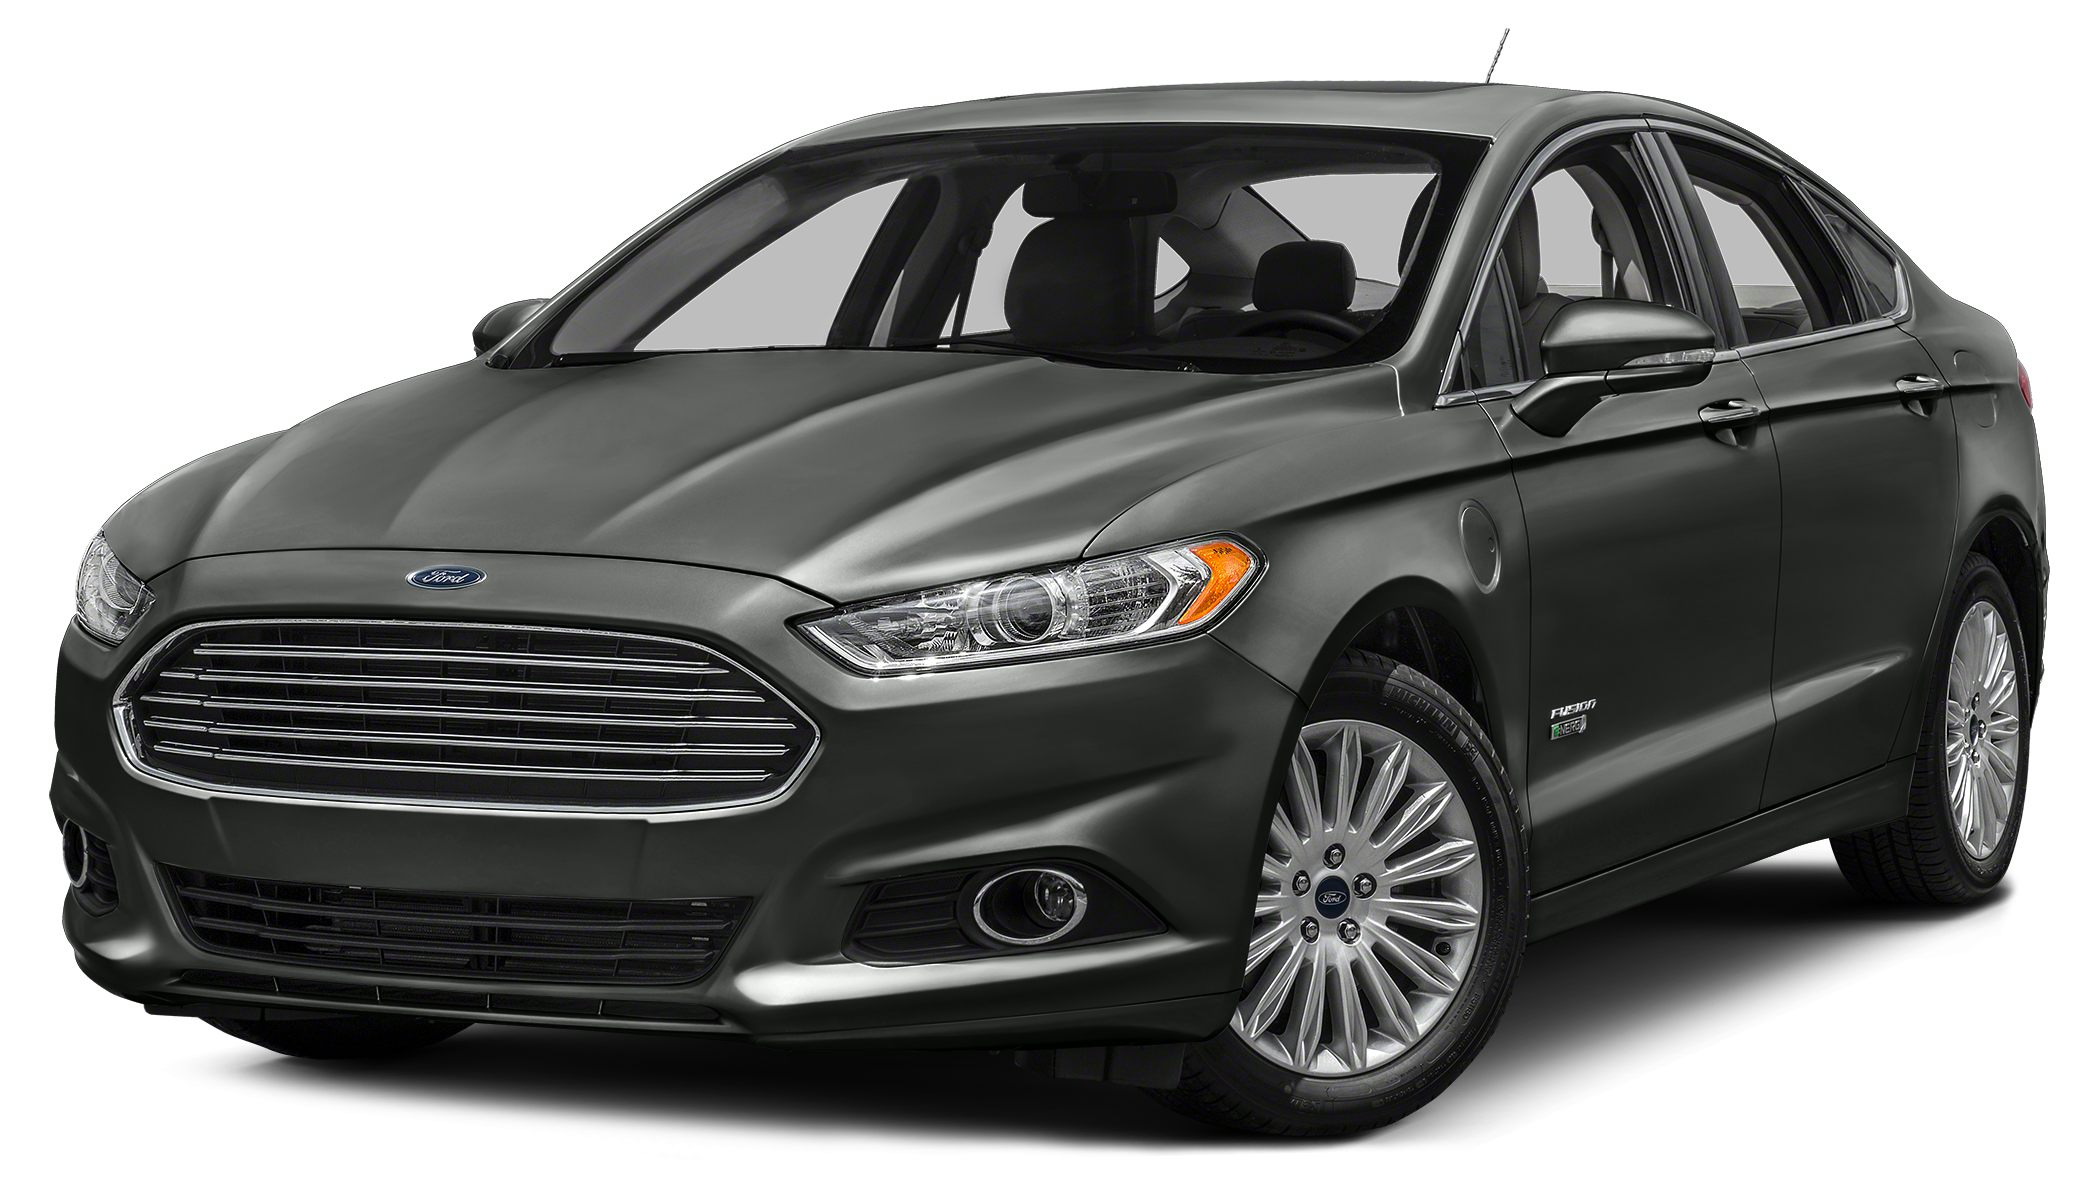 2015 Ford Fusion Energi Titanium The 2015 Ford Fusion Energi models have an upscale style and fron